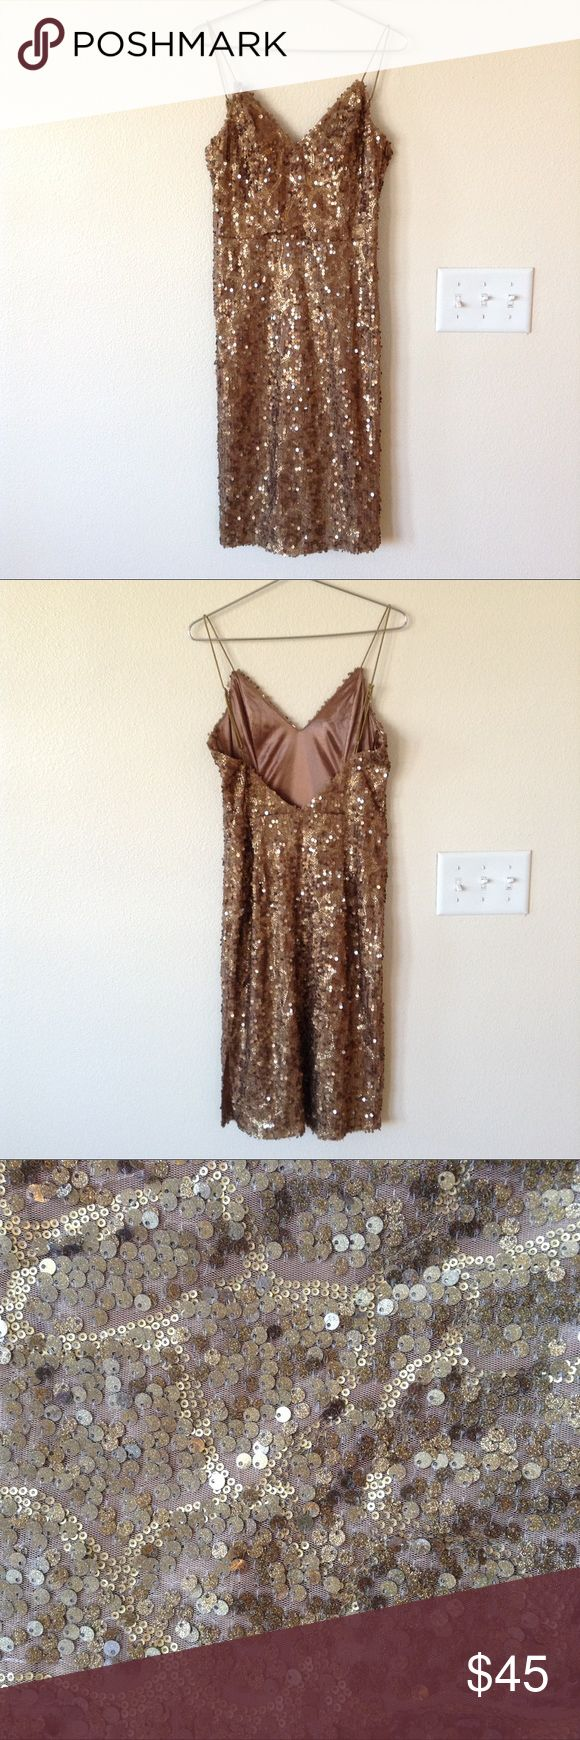 Gianni Bini Gold and Brown Sequin Dress Gorgeous Gianni Bini dress with gold and shimmering brown sequins. Zips up on the side. It has a nice weight to it and a small slit on the left side of the dress. This is a showstopper! Perfect for NYE! Gianni Bini Dresses